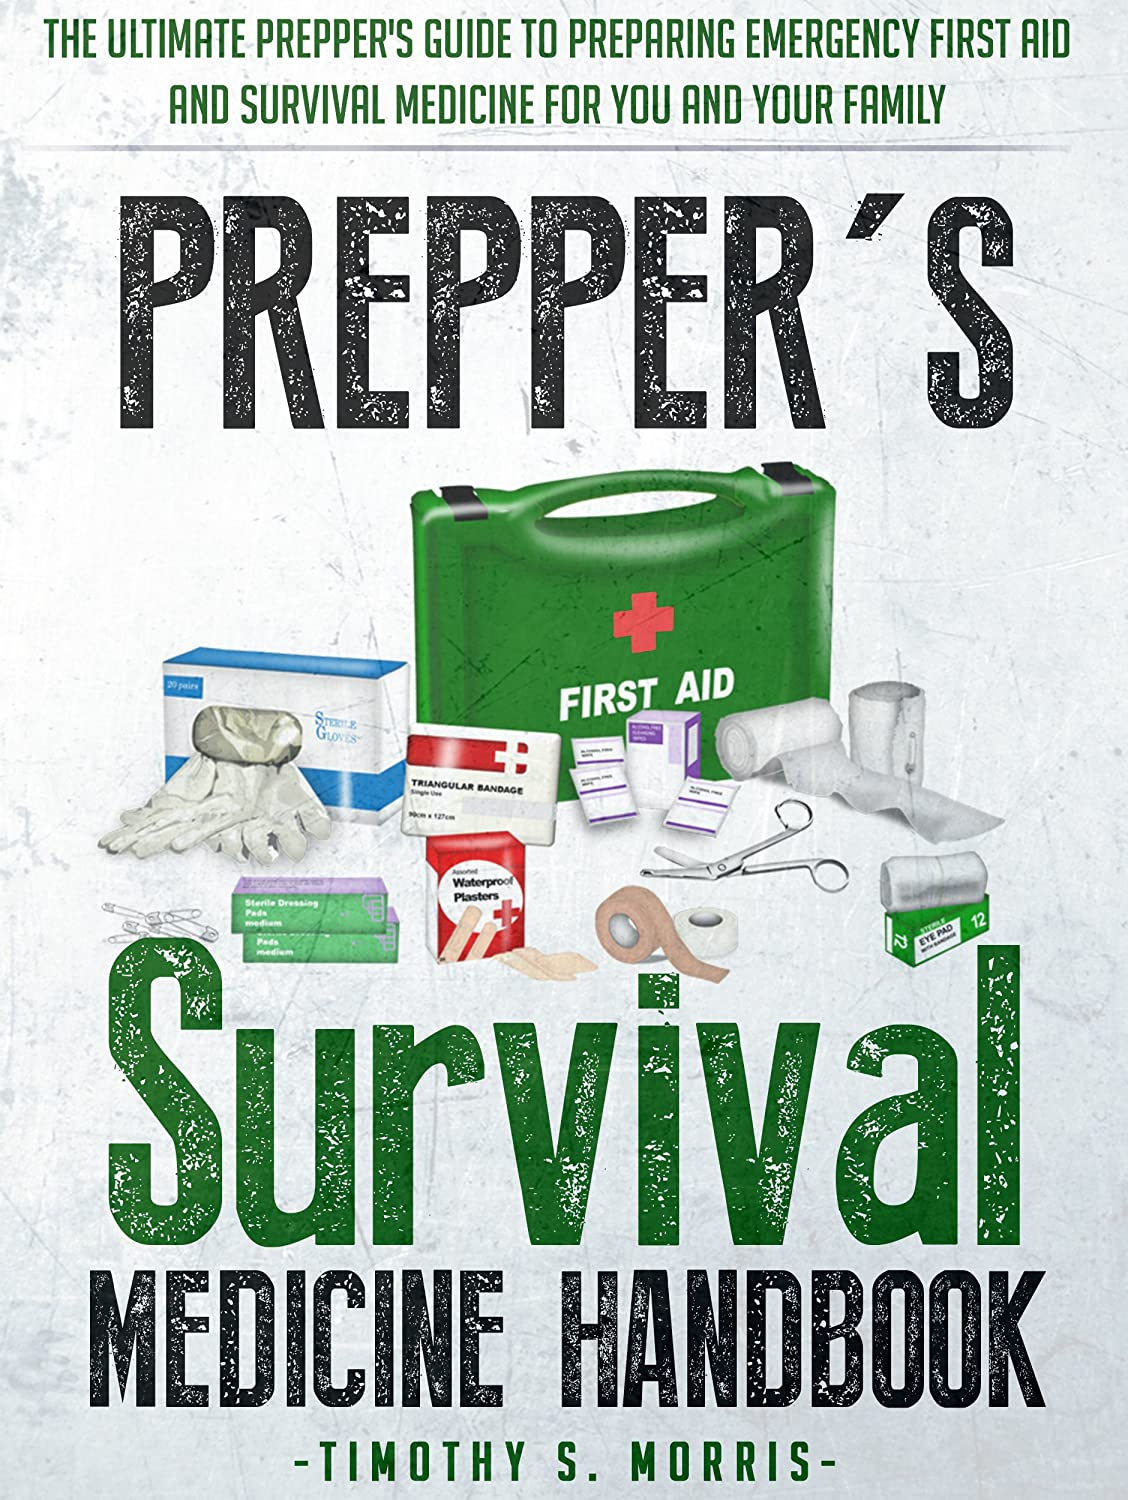 http://www.amazon.com/Preppers-Survival-Medicine-Handbook-Preparing-ebook/dp/B00Q38CK10/ref=as_sl_pc_ss_til?tag=lettfromahome-20&linkCode=w01&linkId=HTMM5HT2J7XPN7O6&creativeASIN=B00Q38CK10